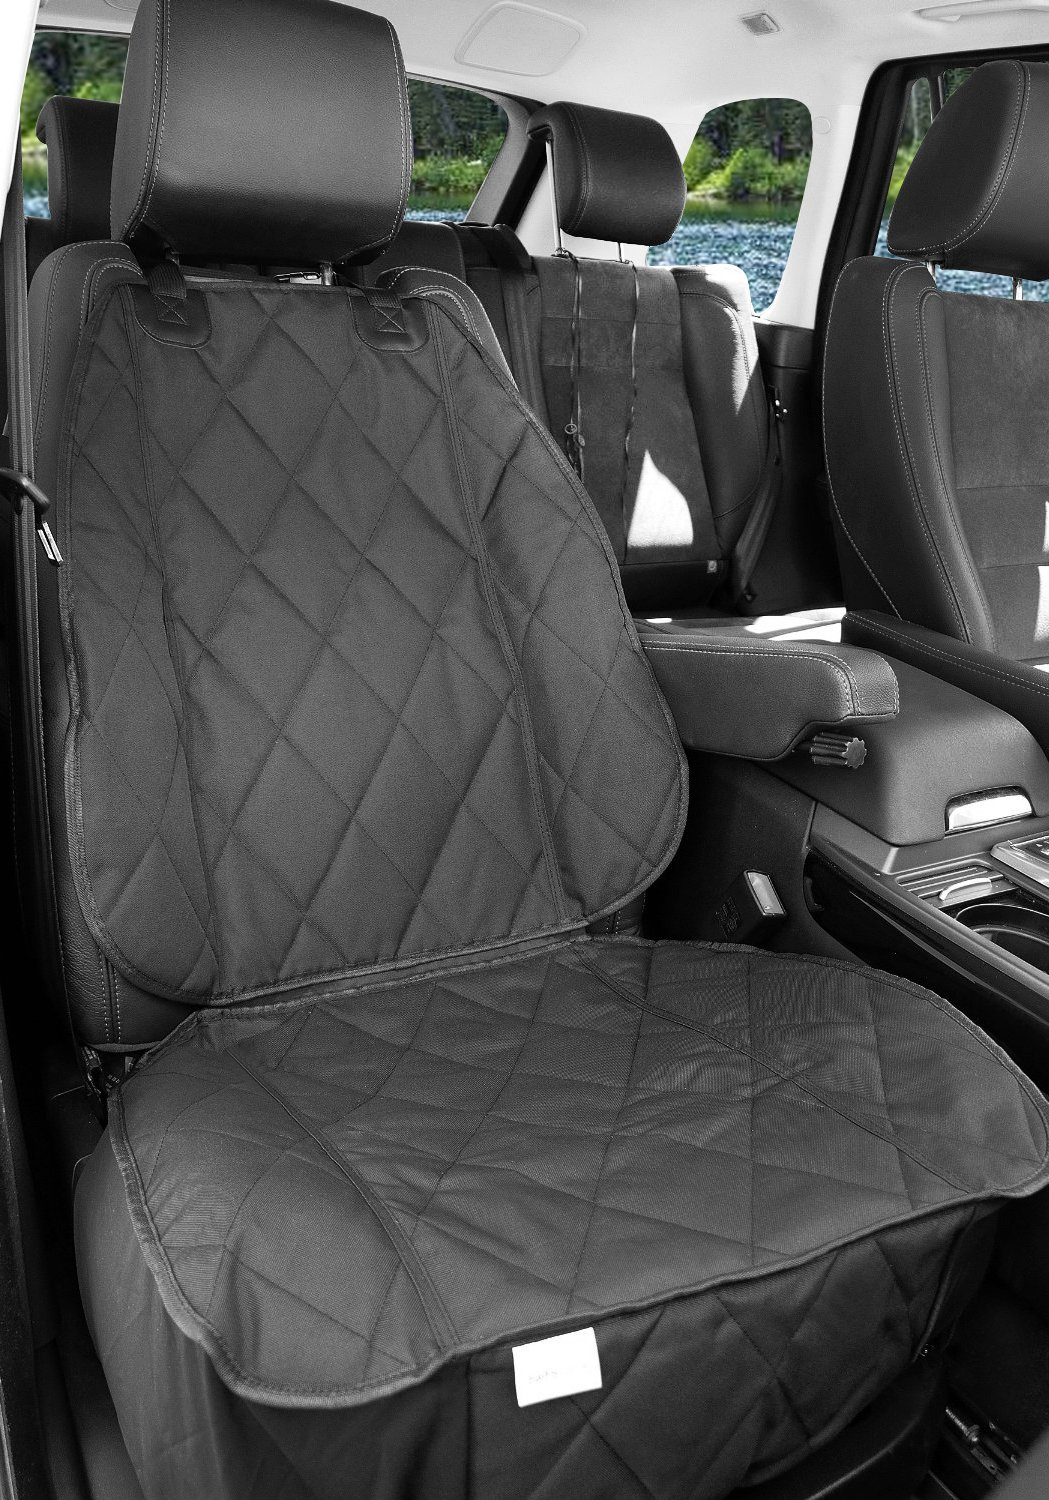 BarksBar Pet Front Seat Cover for Cars - Black, WaterProof & Nonslip Backing by BarksBar (Image #2)